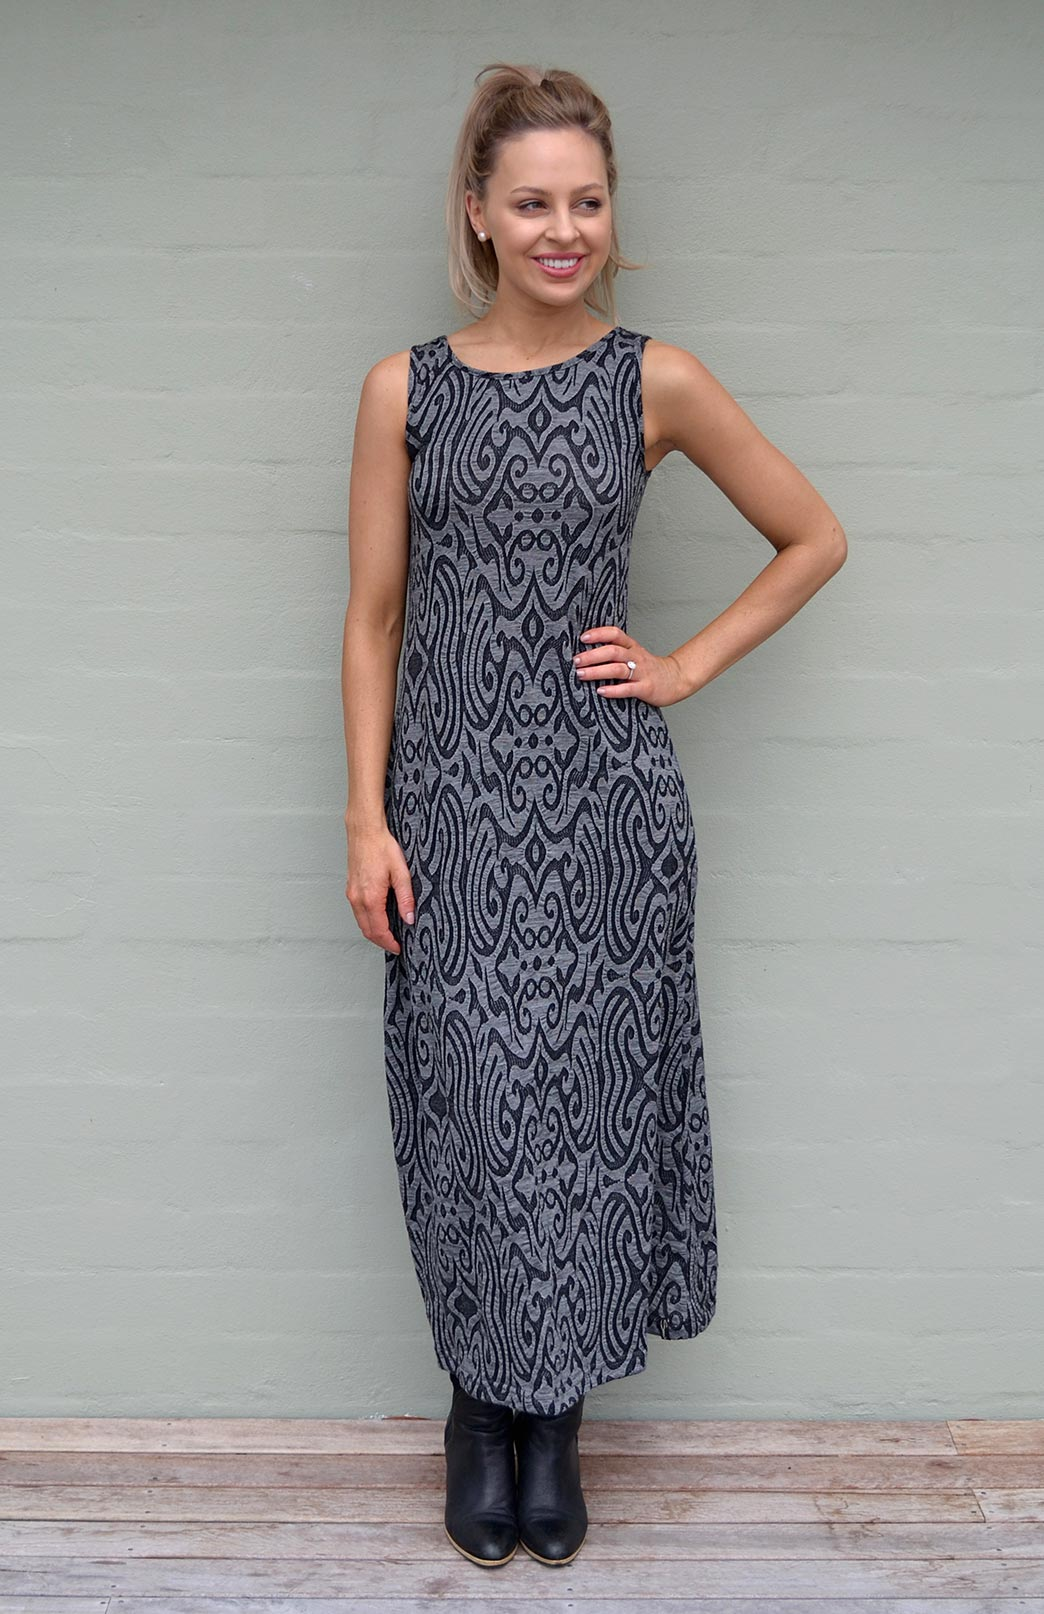 Boat Neck Maxi Dress - Pattern - Women's Black & Grey Long Wool Maxi Summer Dress - Smitten Merino Tasmania Australia